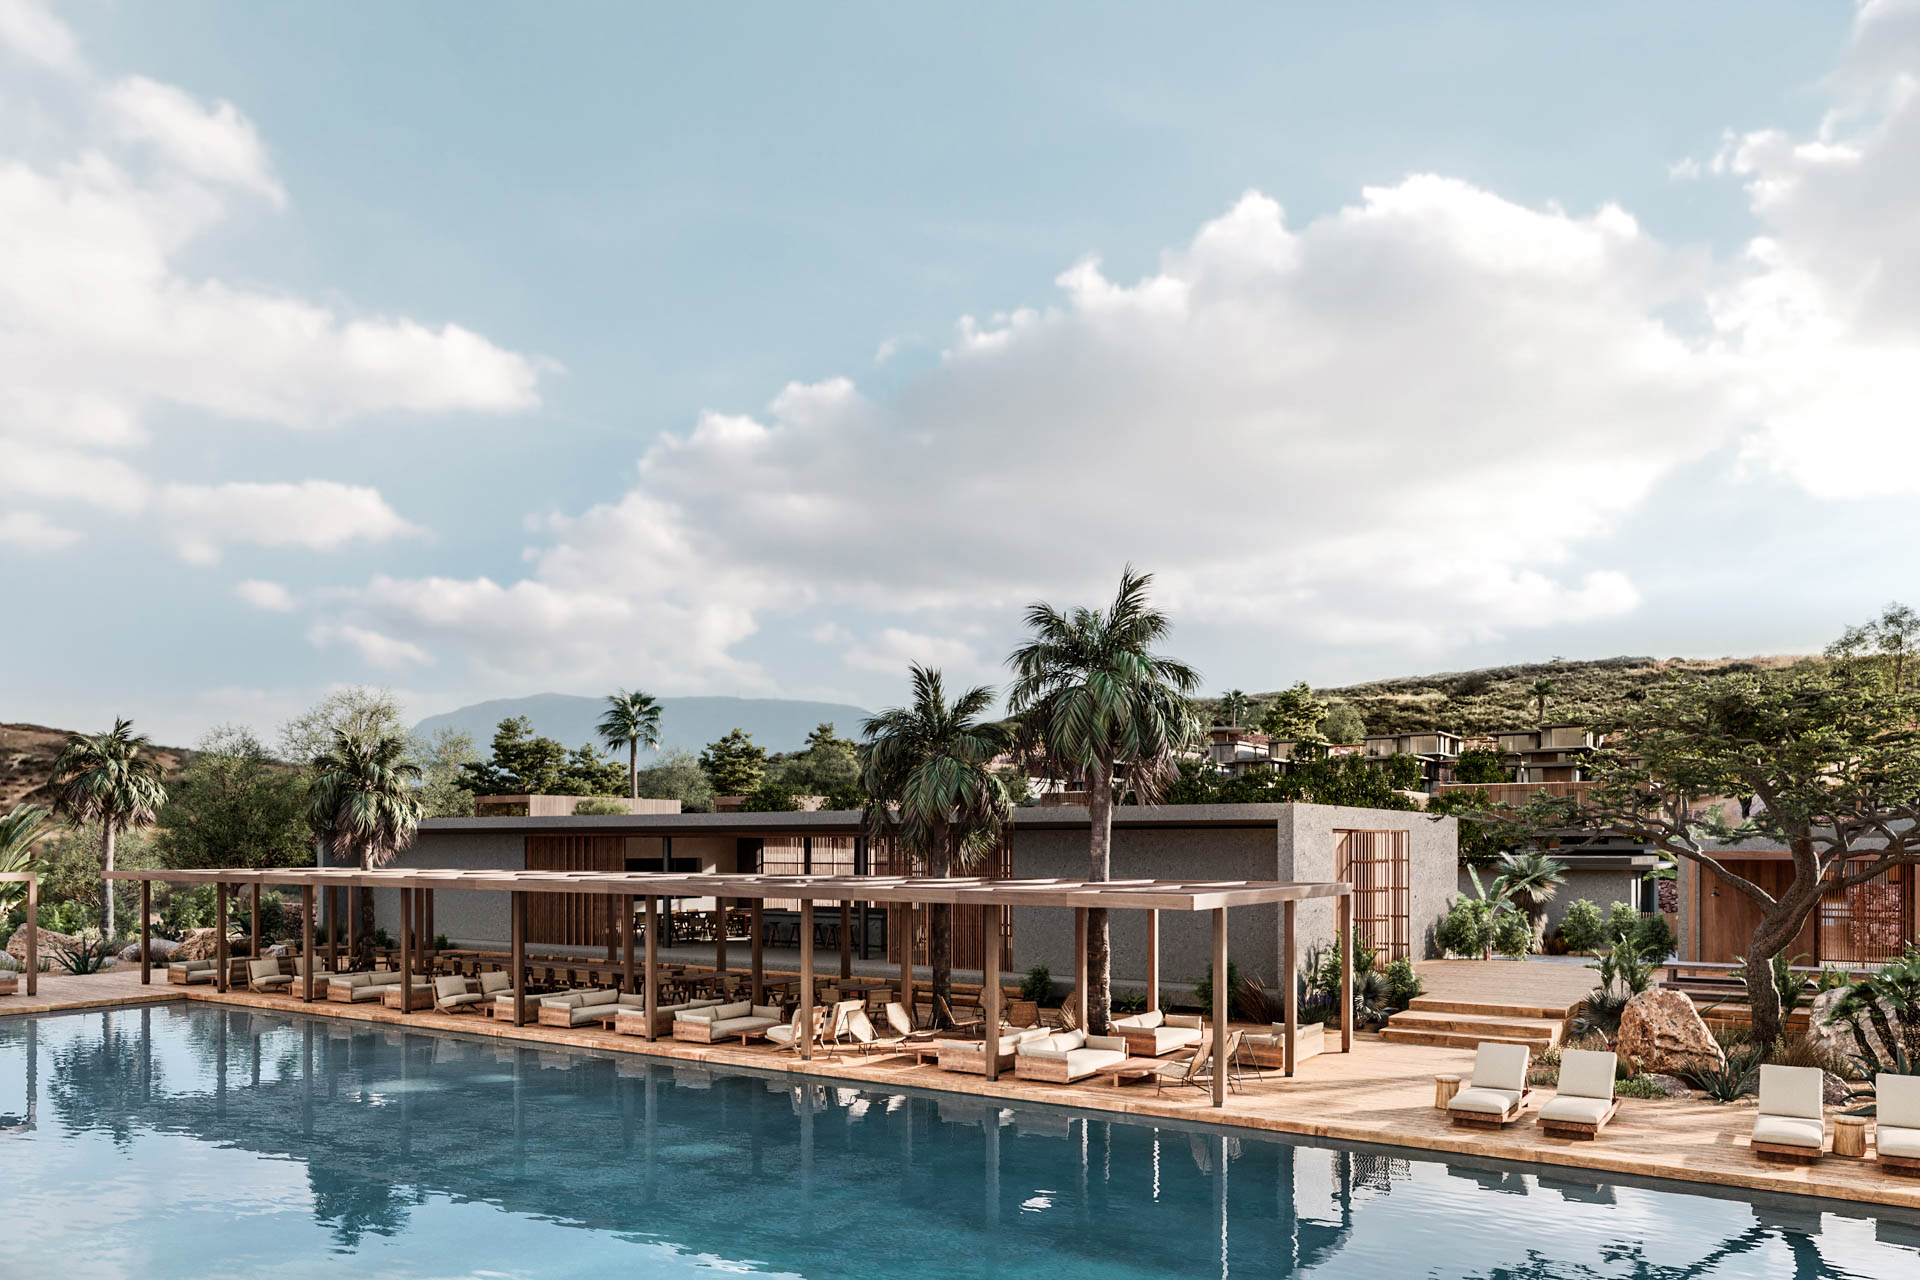 Boutique Hotels With A Laid Back Spirit By Thomas Cook